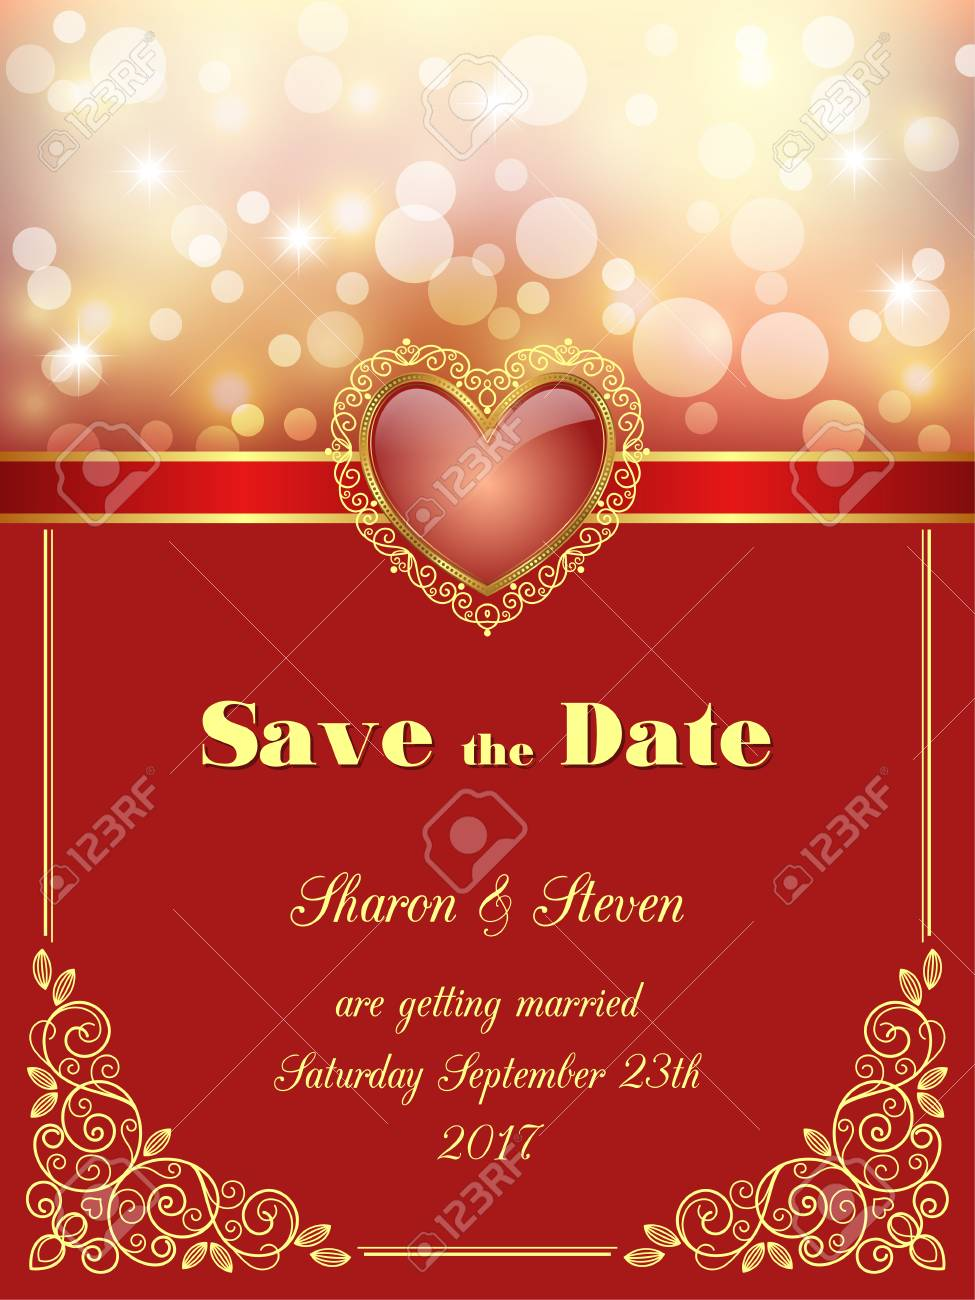 Save The Date Card, Wedding Invitation With Decorative Design ...